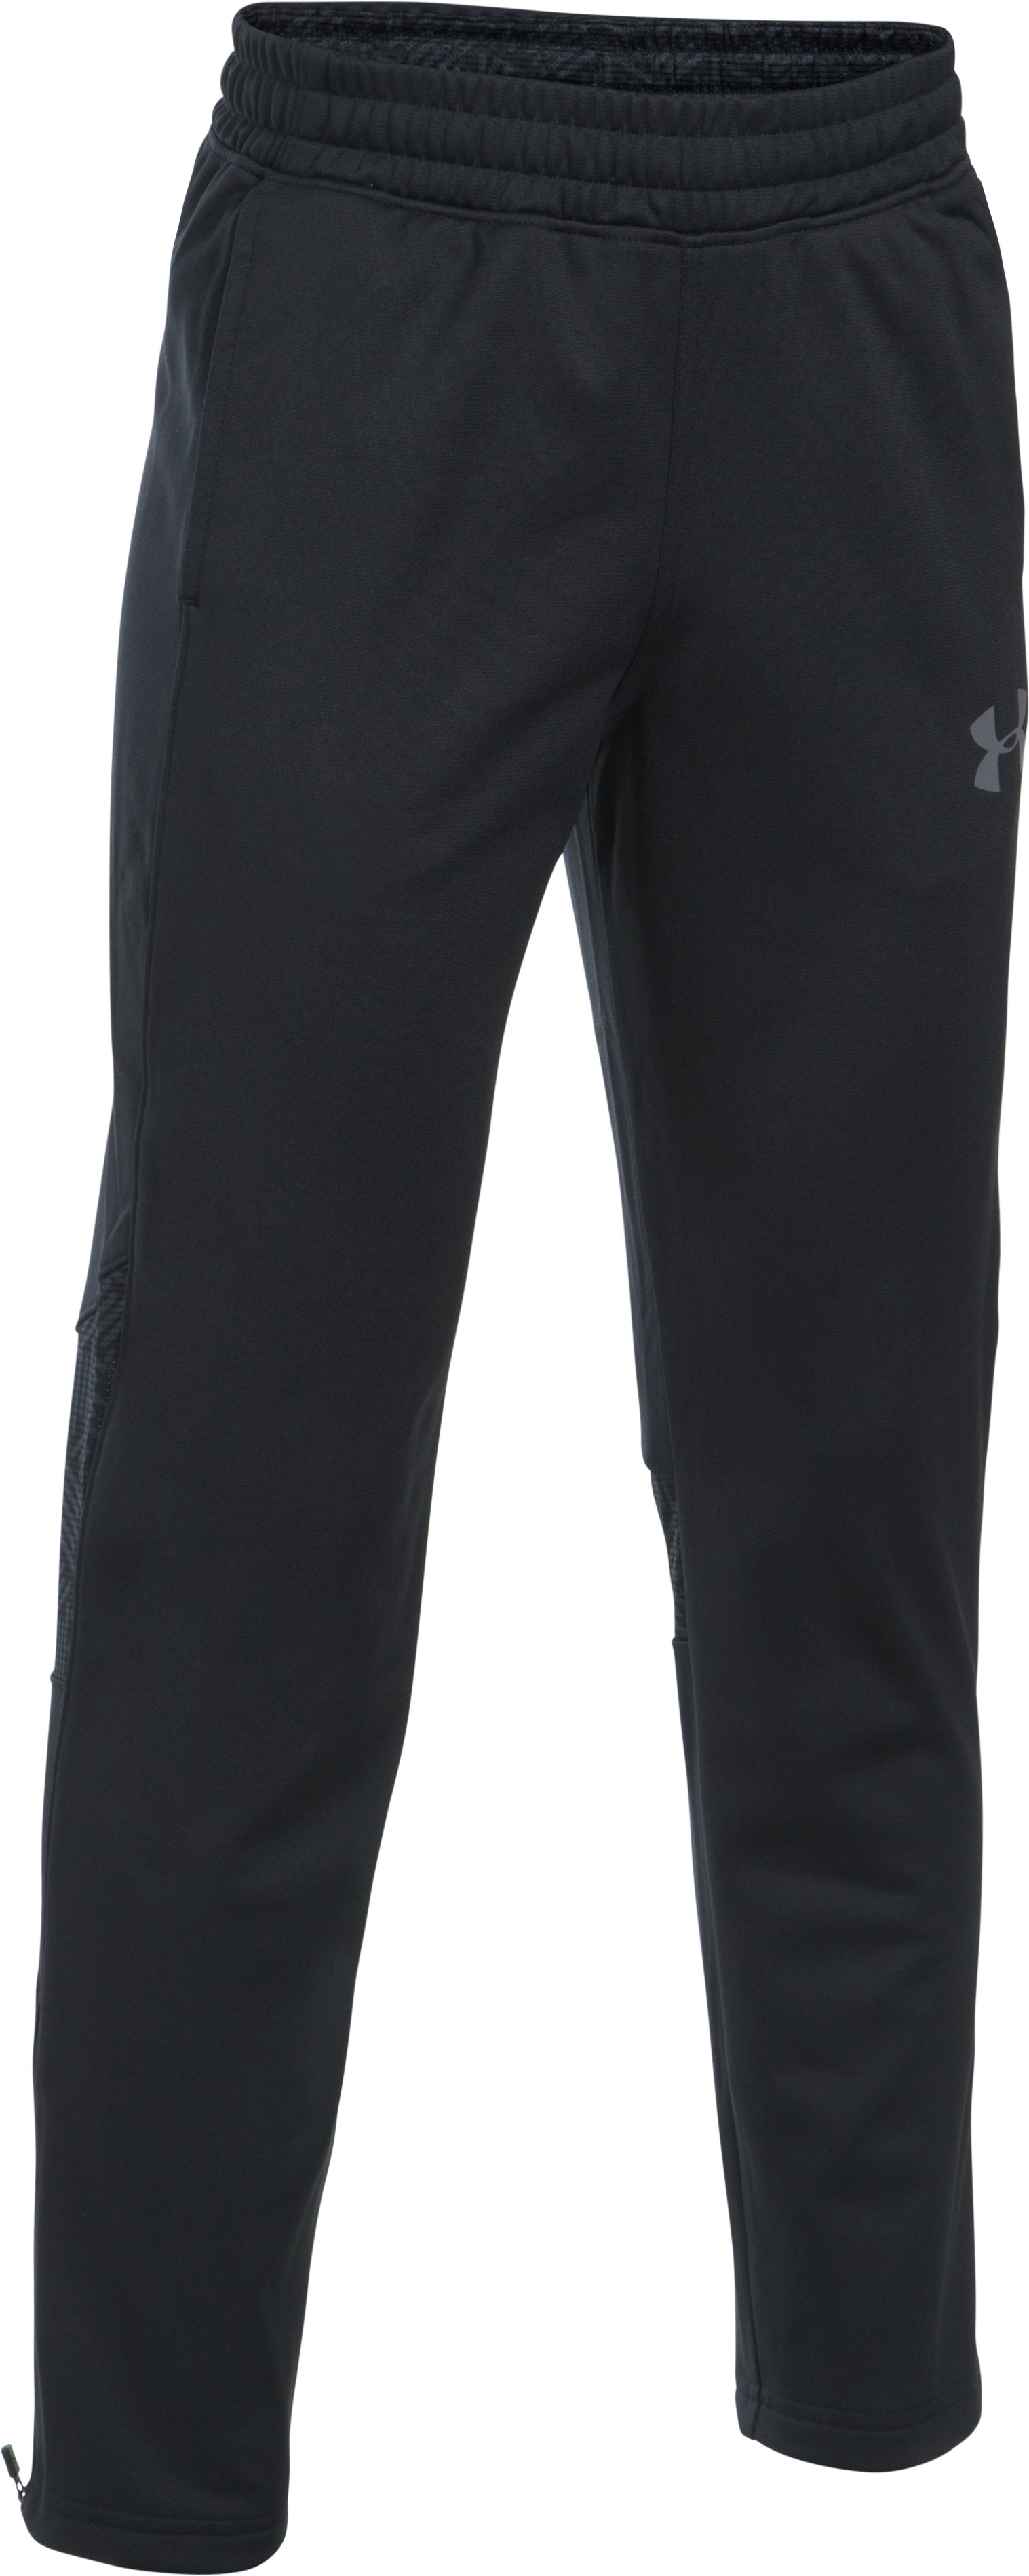 Boys' UA Select Warm-Up Pants, Black , undefined